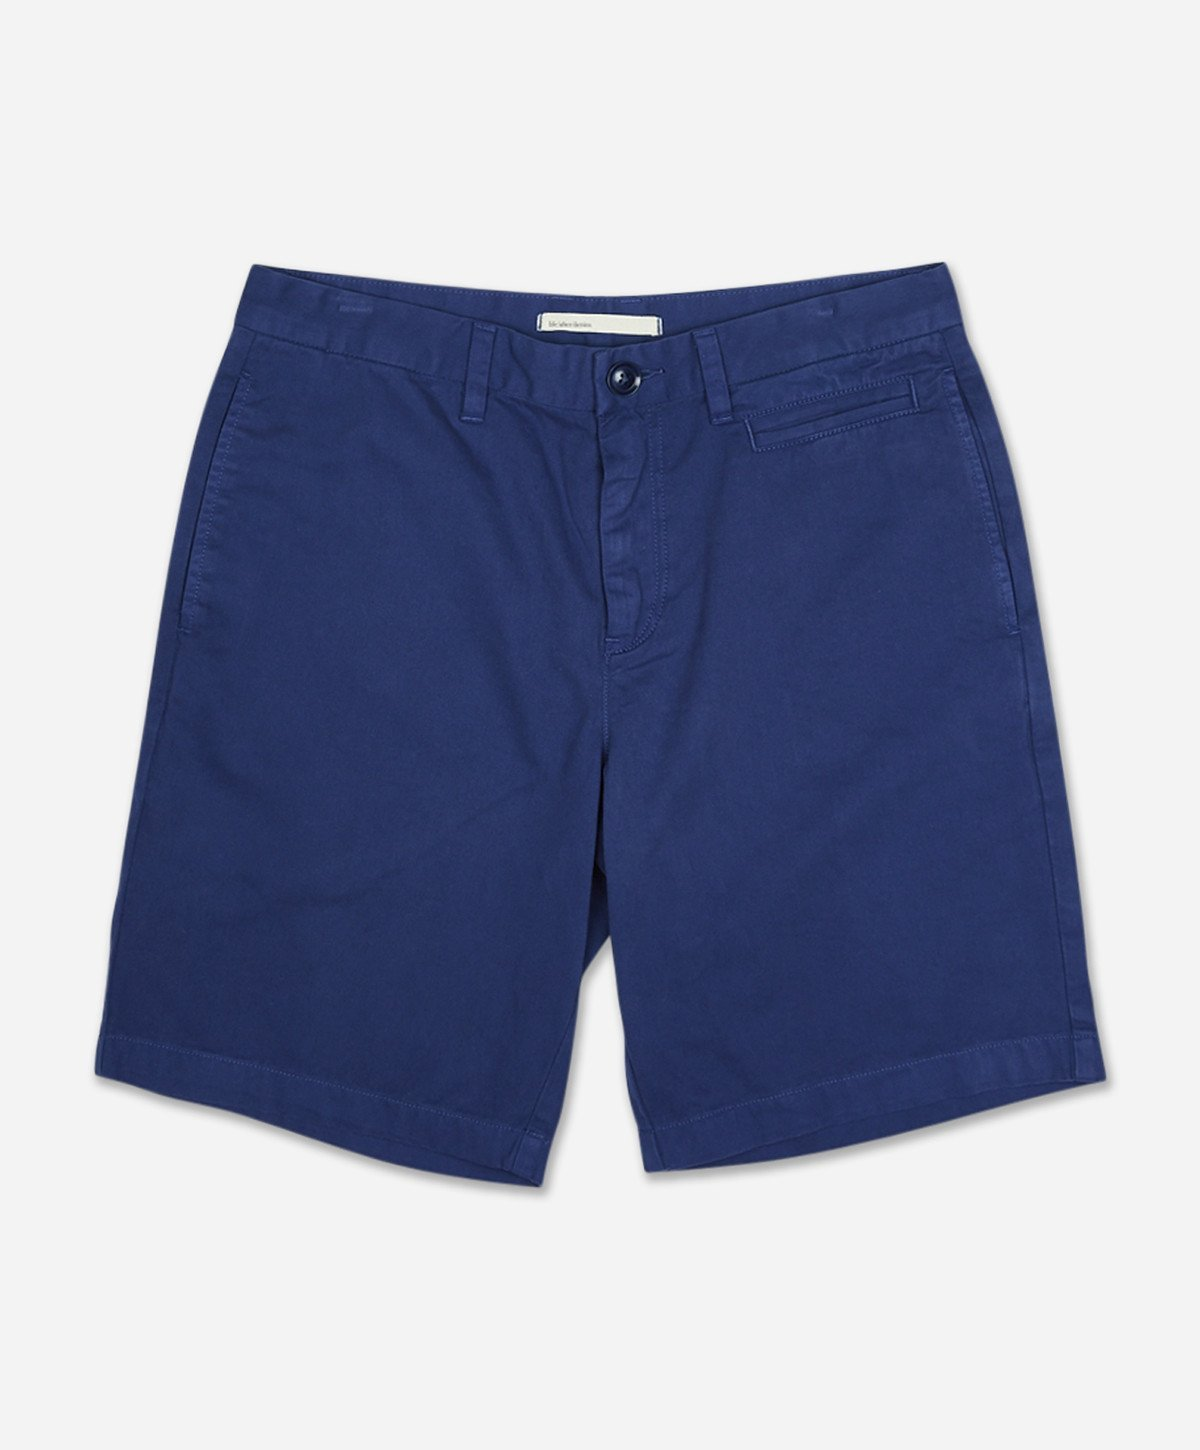 Zuma Short - Blue Marine